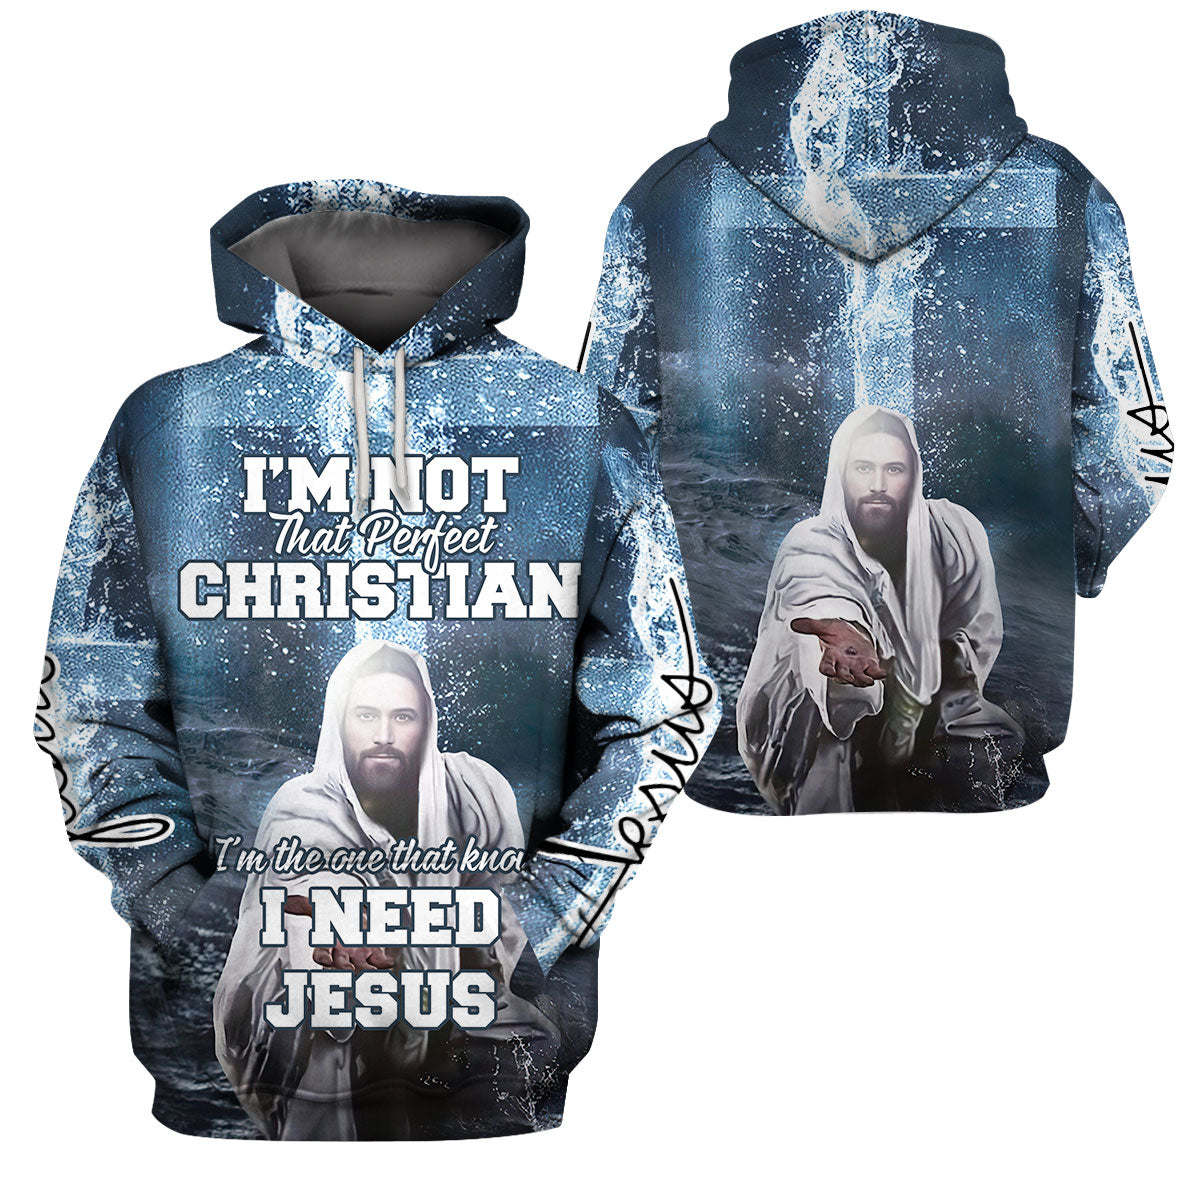 I'm not that perfect christian - I'm the one that know I need jesus - 3D Print Full Clothing